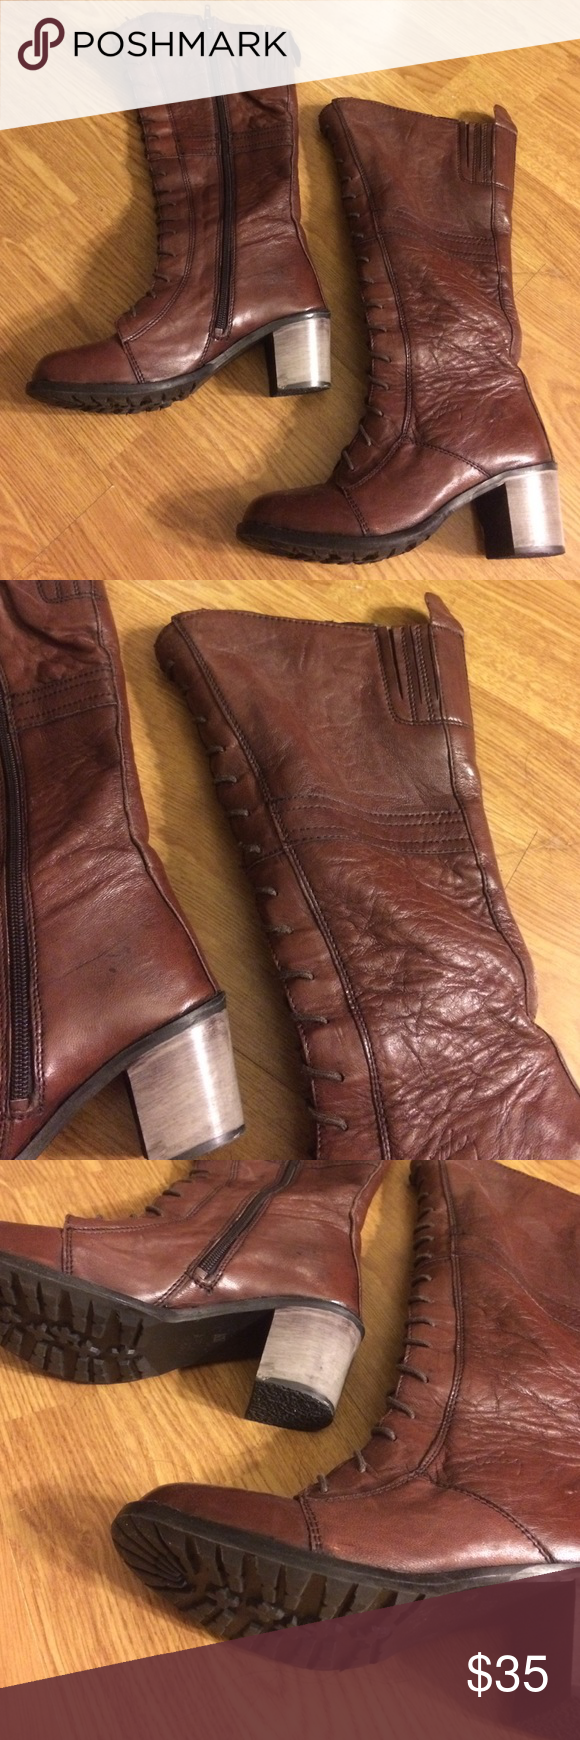 Brown boots Brown boots. Hardly worn, still really good condition! Velez leather boots Shoes Heeled Boots